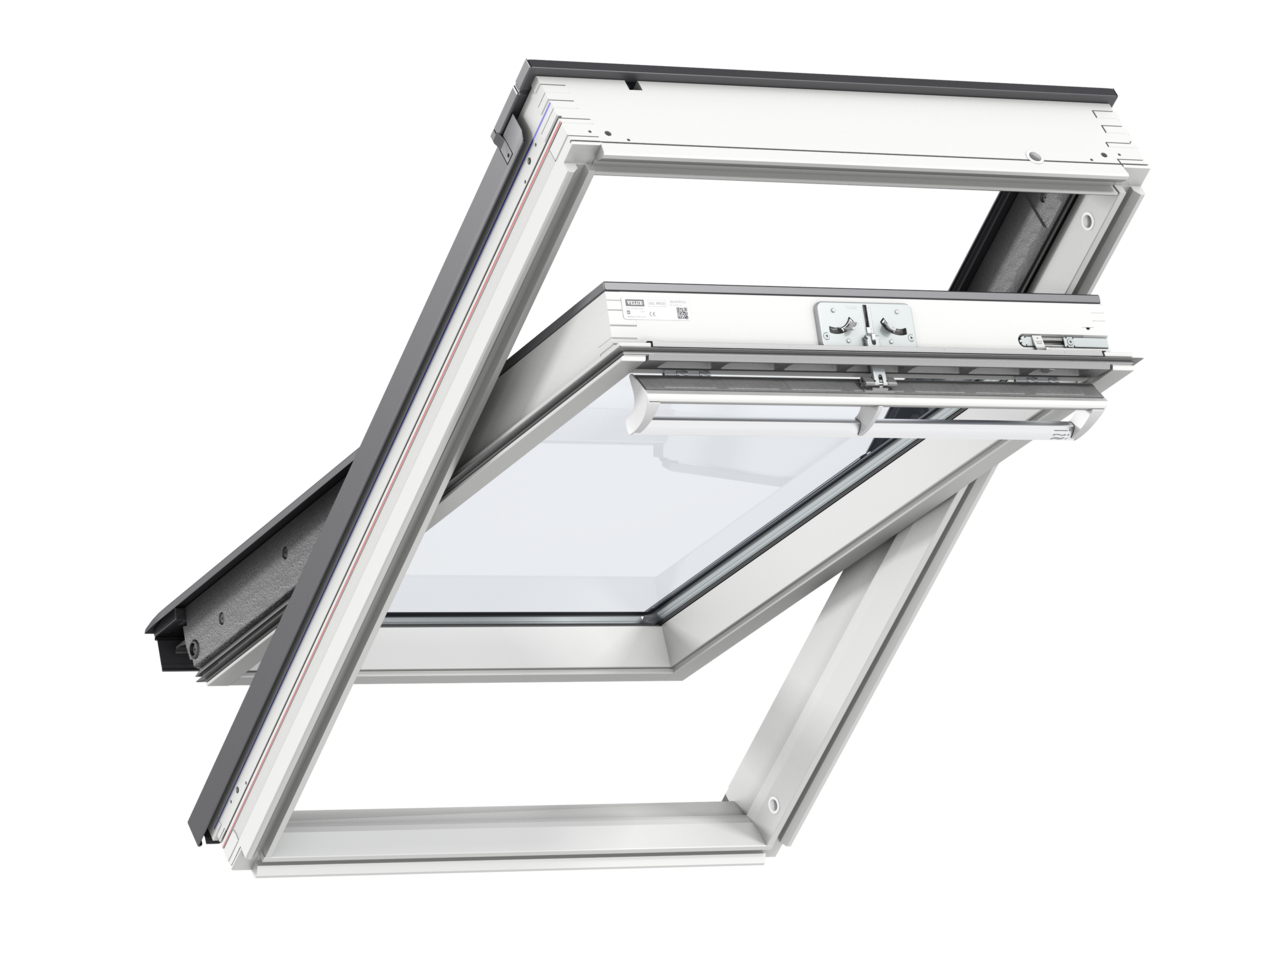 Velux GGL UK04 1340 x 980mm Centre Pivot 70QPane Roof Window - White Painted